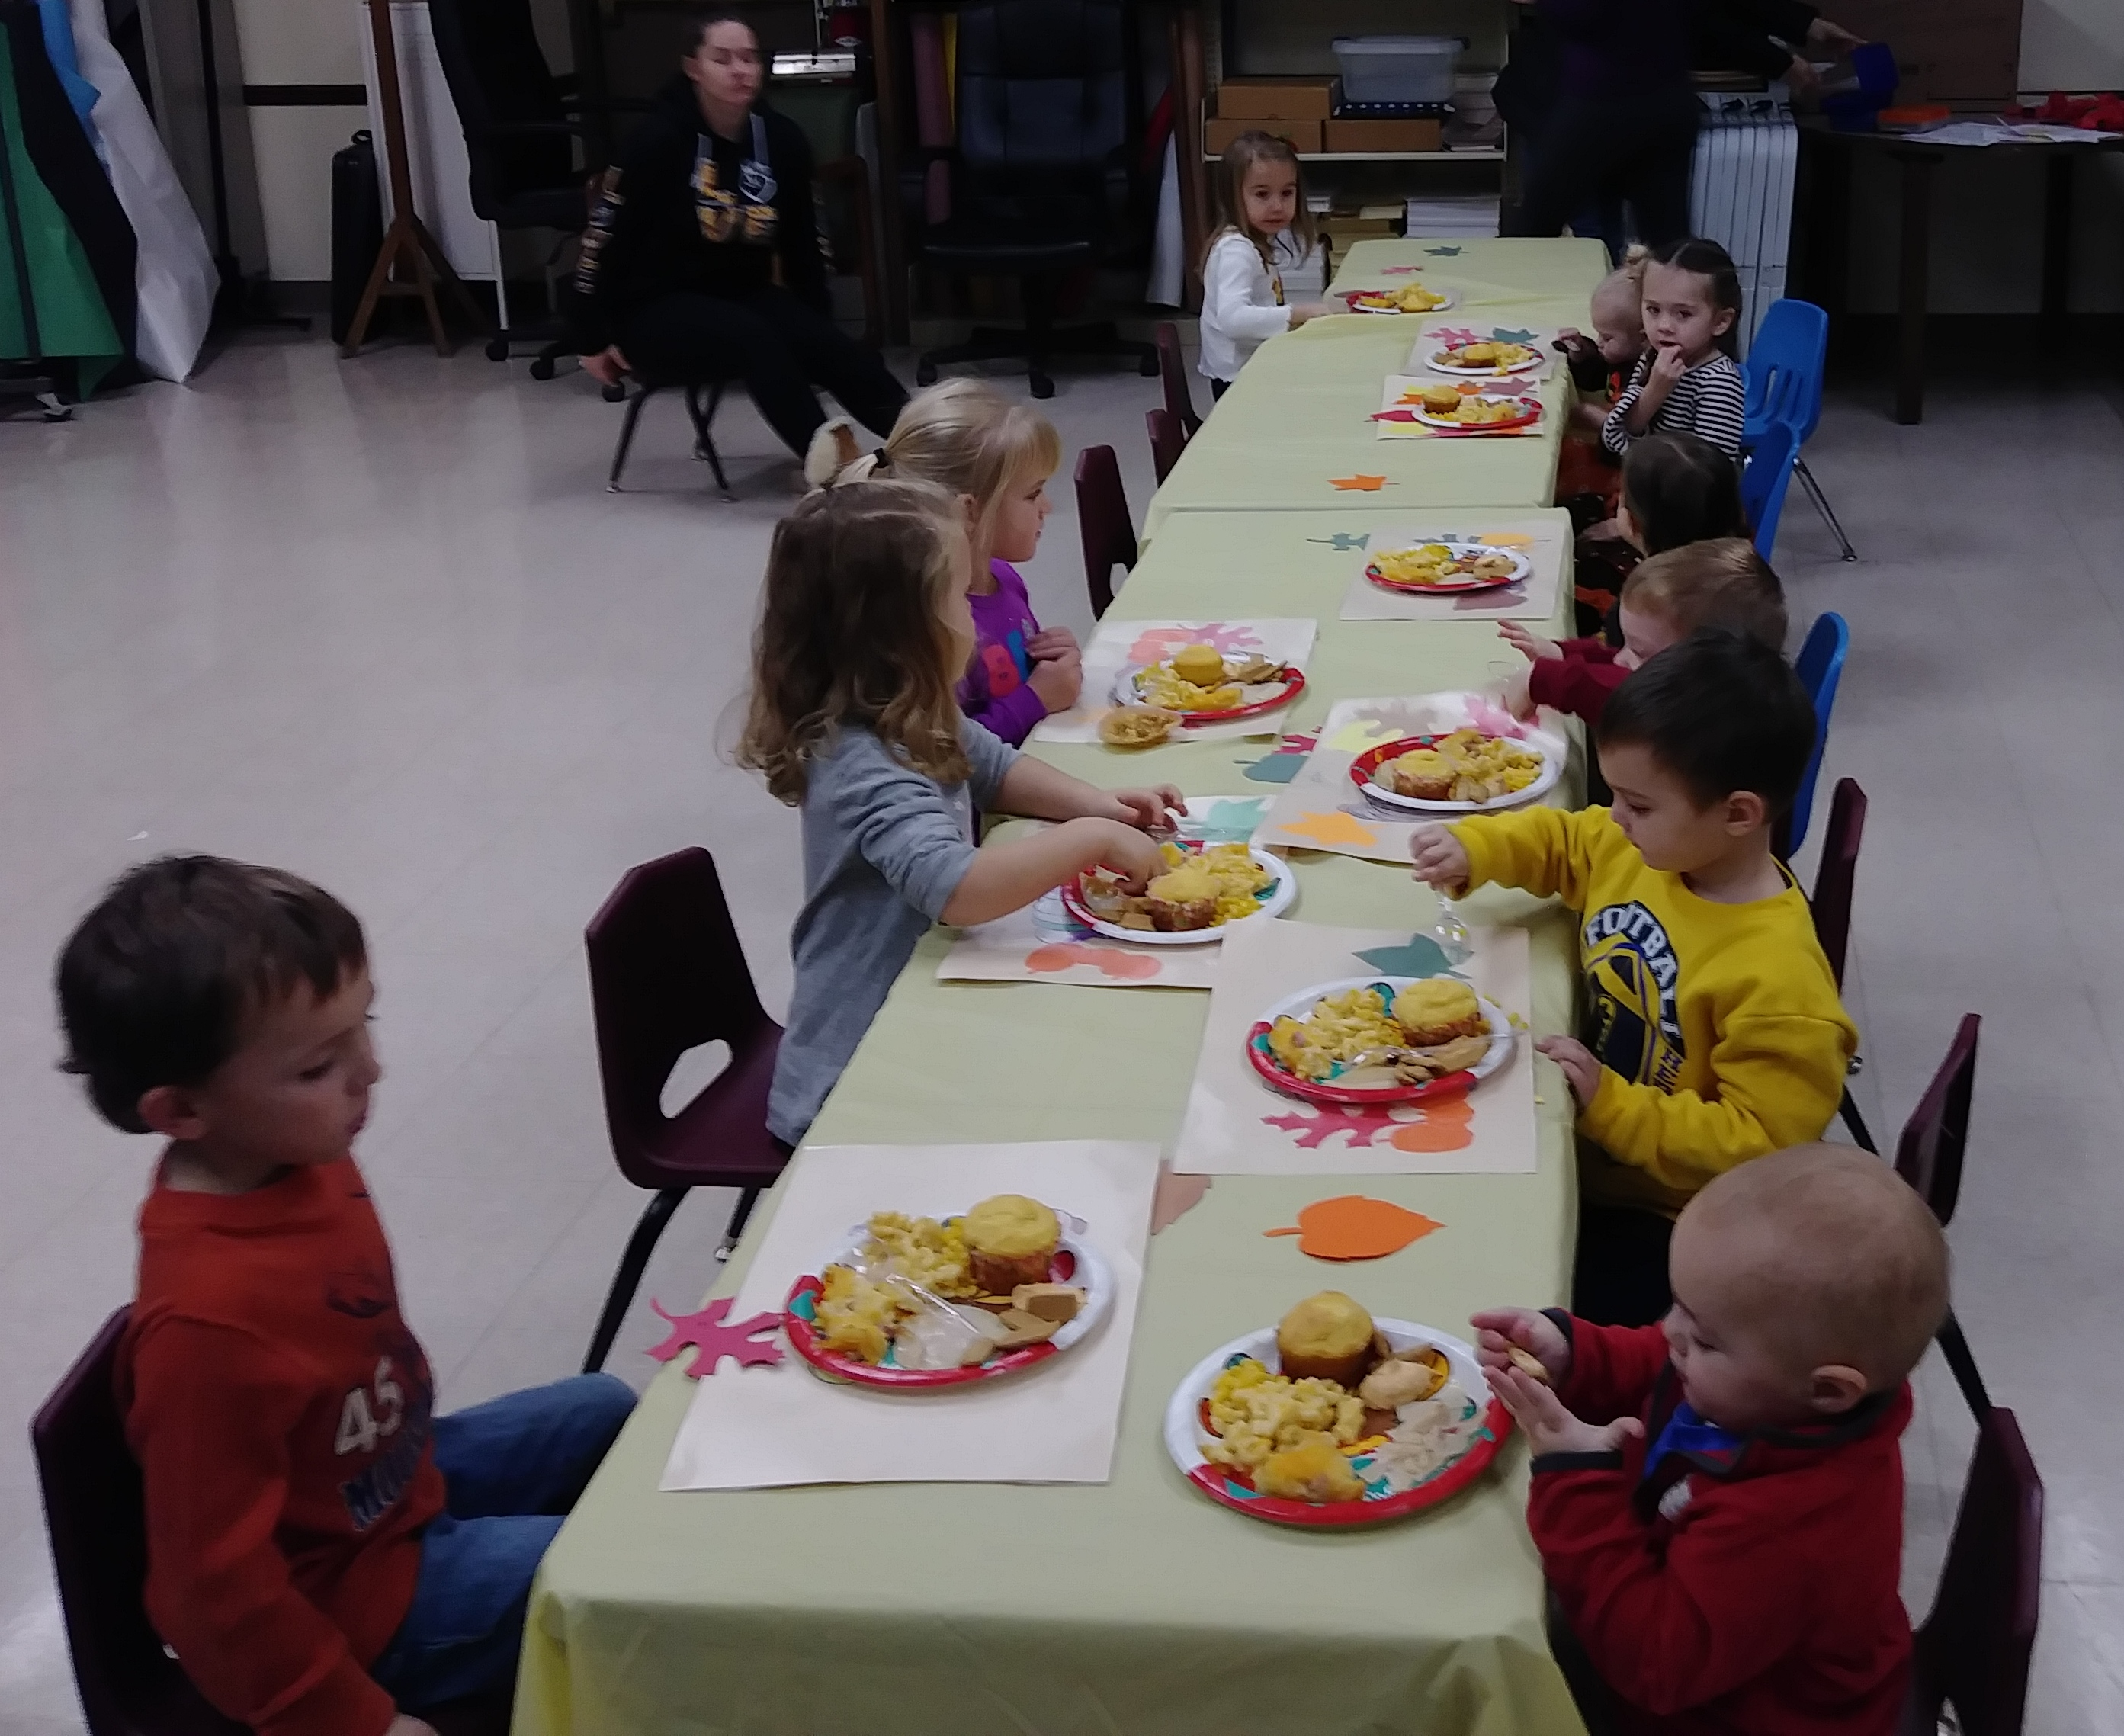 Our annual Storytime Thanksgiving feast was a hit with the preschoolers and their caregivers.